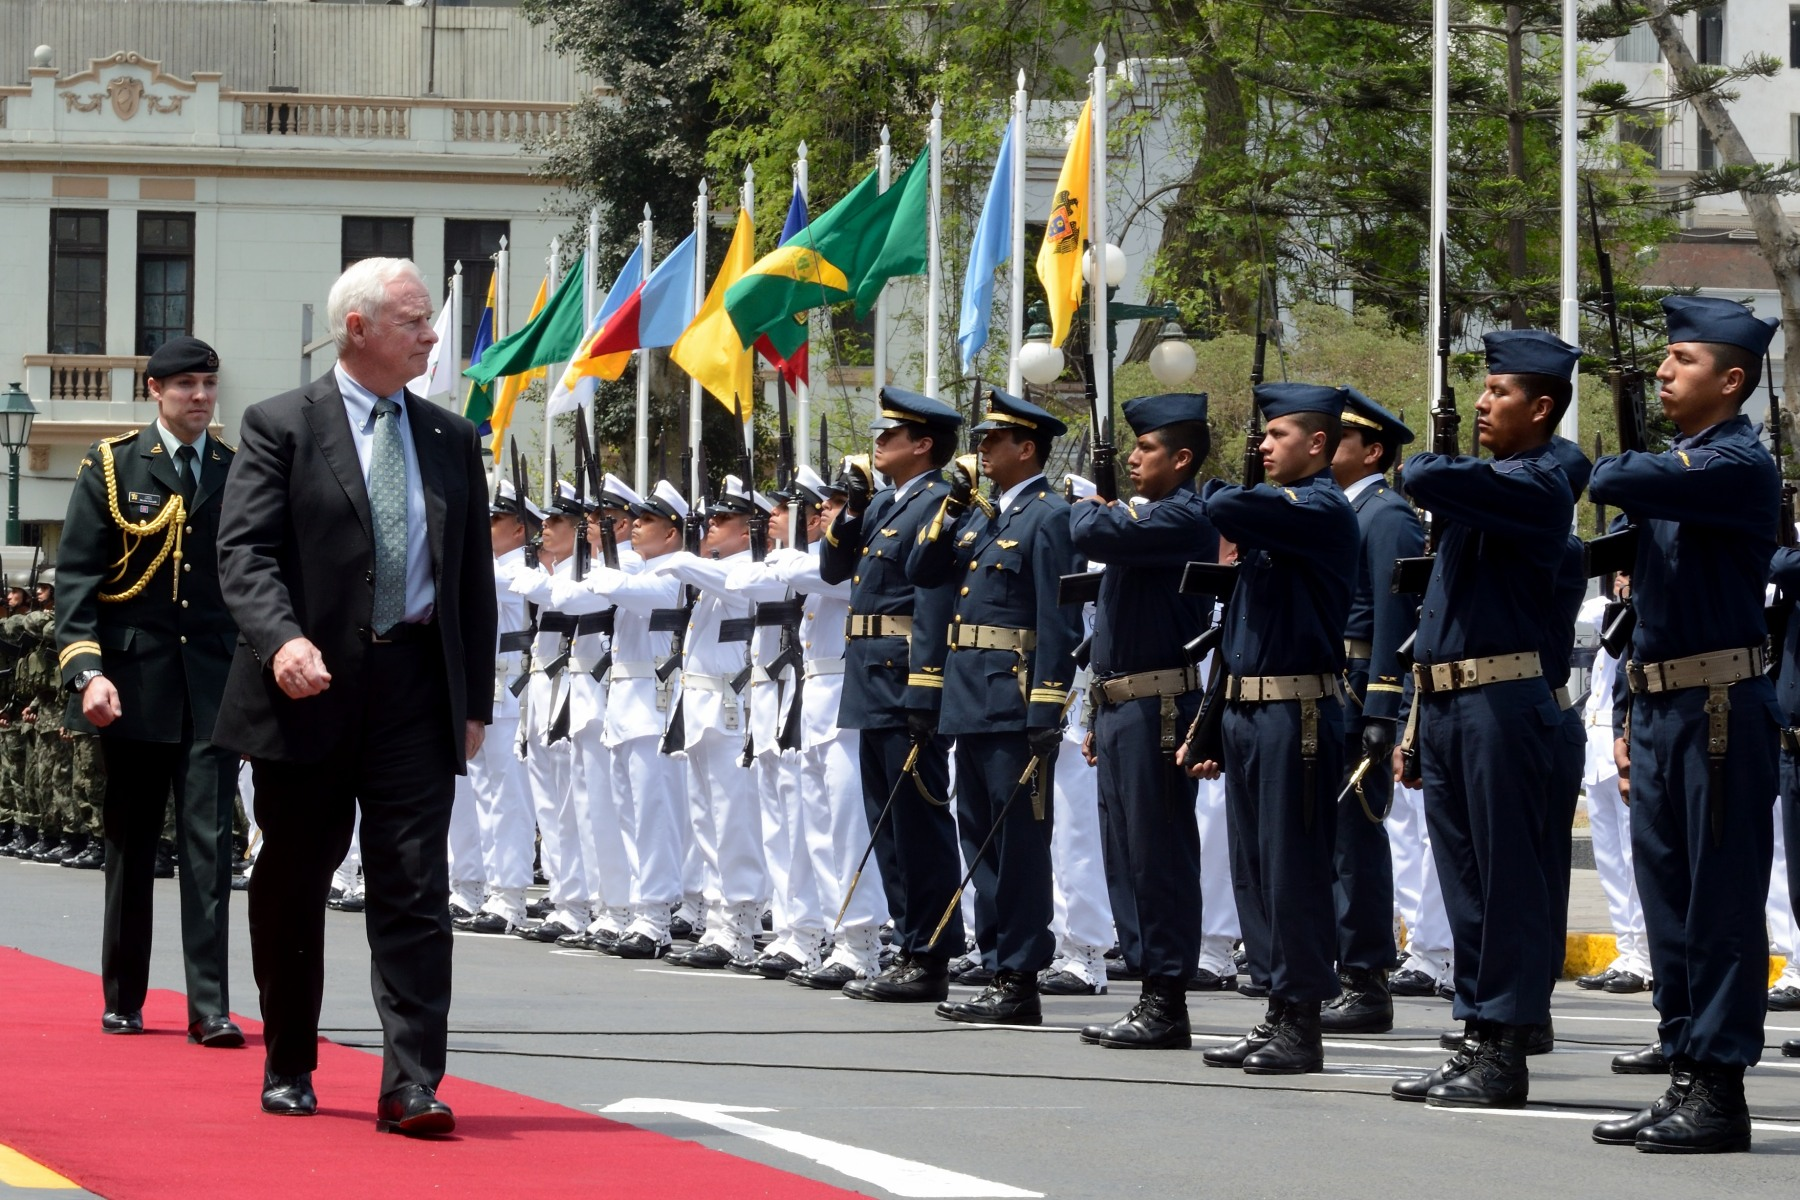 During his visit to Lima, His Excellency the Right Honourable David Johnston, Governor General of Canada, met with His Excellency Victor Isla Rojas, President of the Congress of the Republic of Peru. The Governor General conducted the inspection of the guard of honour.